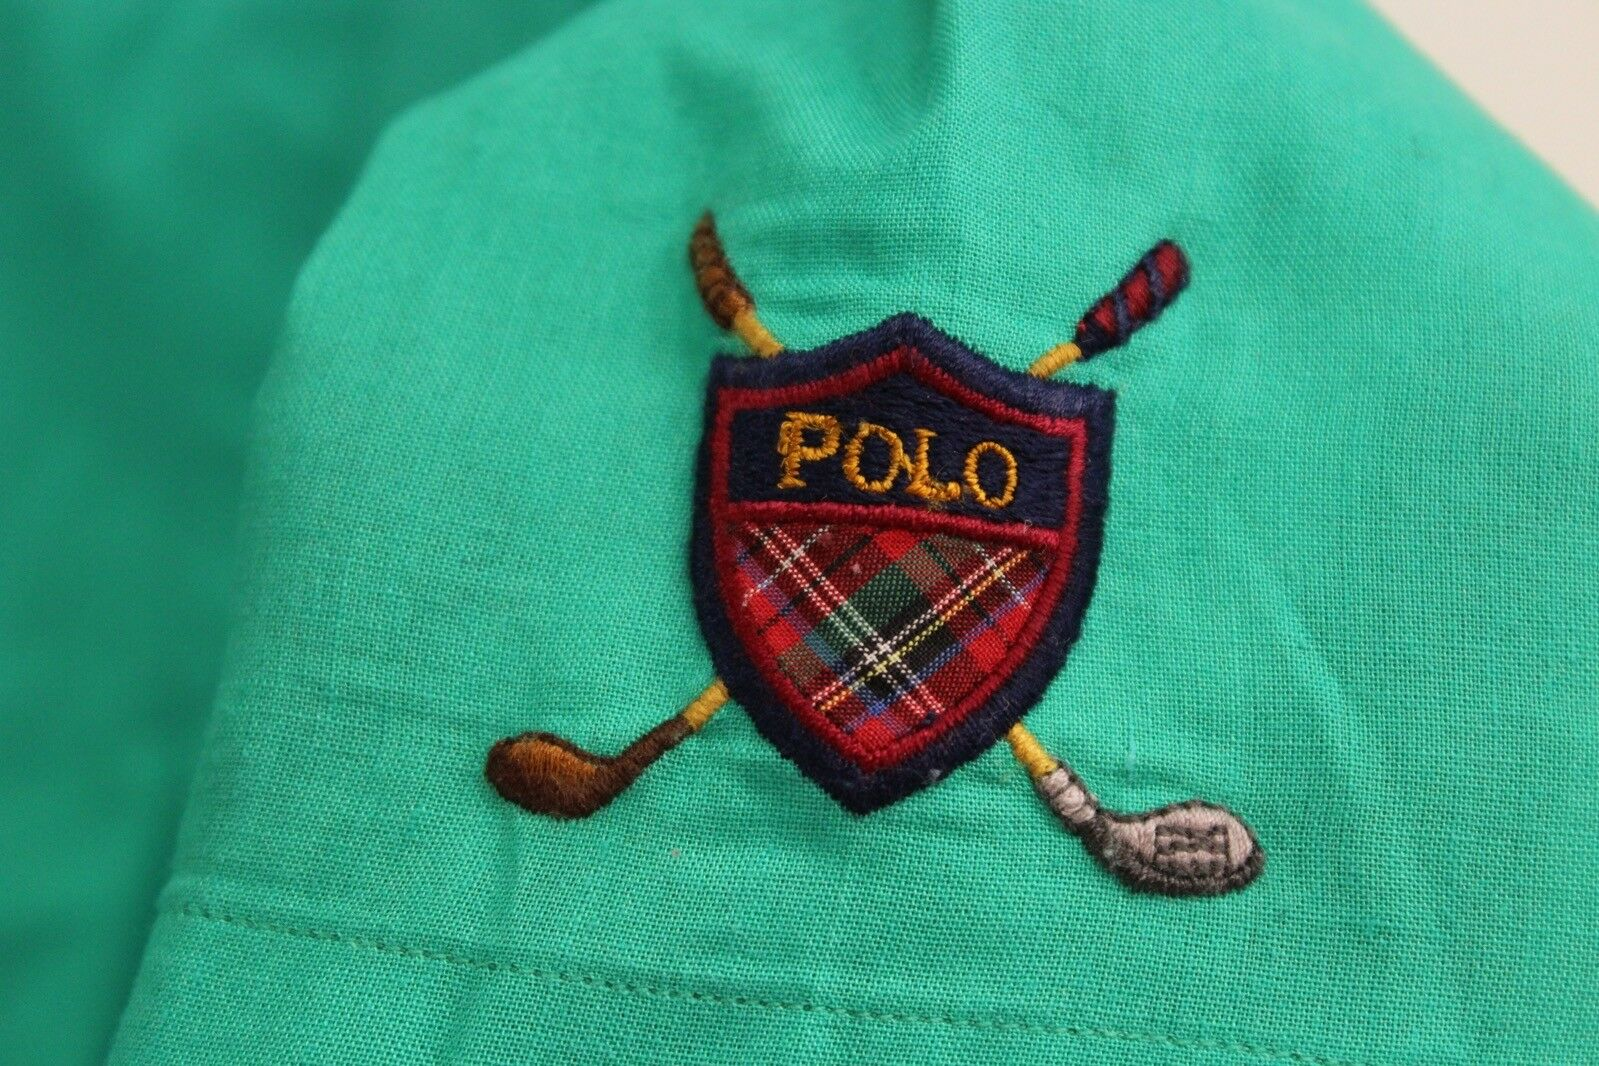 VTG 80's 90's Polo Ralph Lauren Happy Green Butto… - image 3